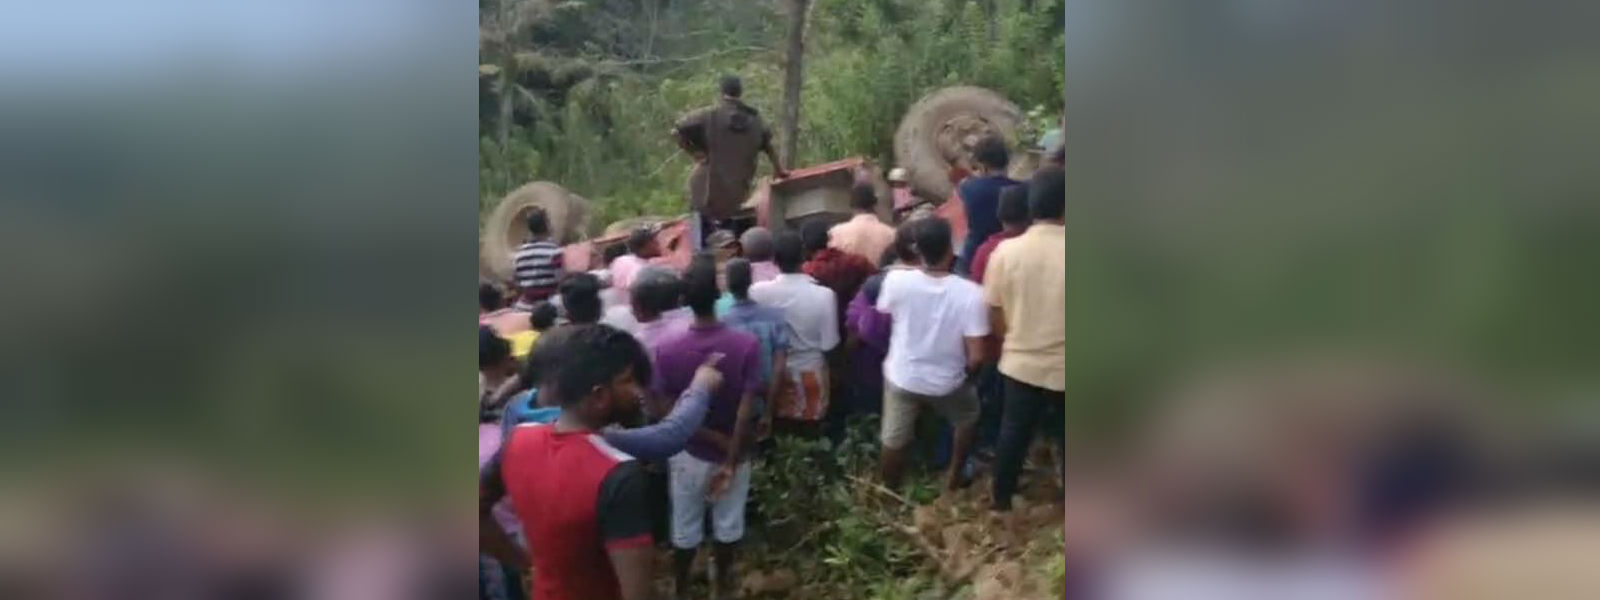 Passara Accident : Rs. 50,000 compensation for victims' families